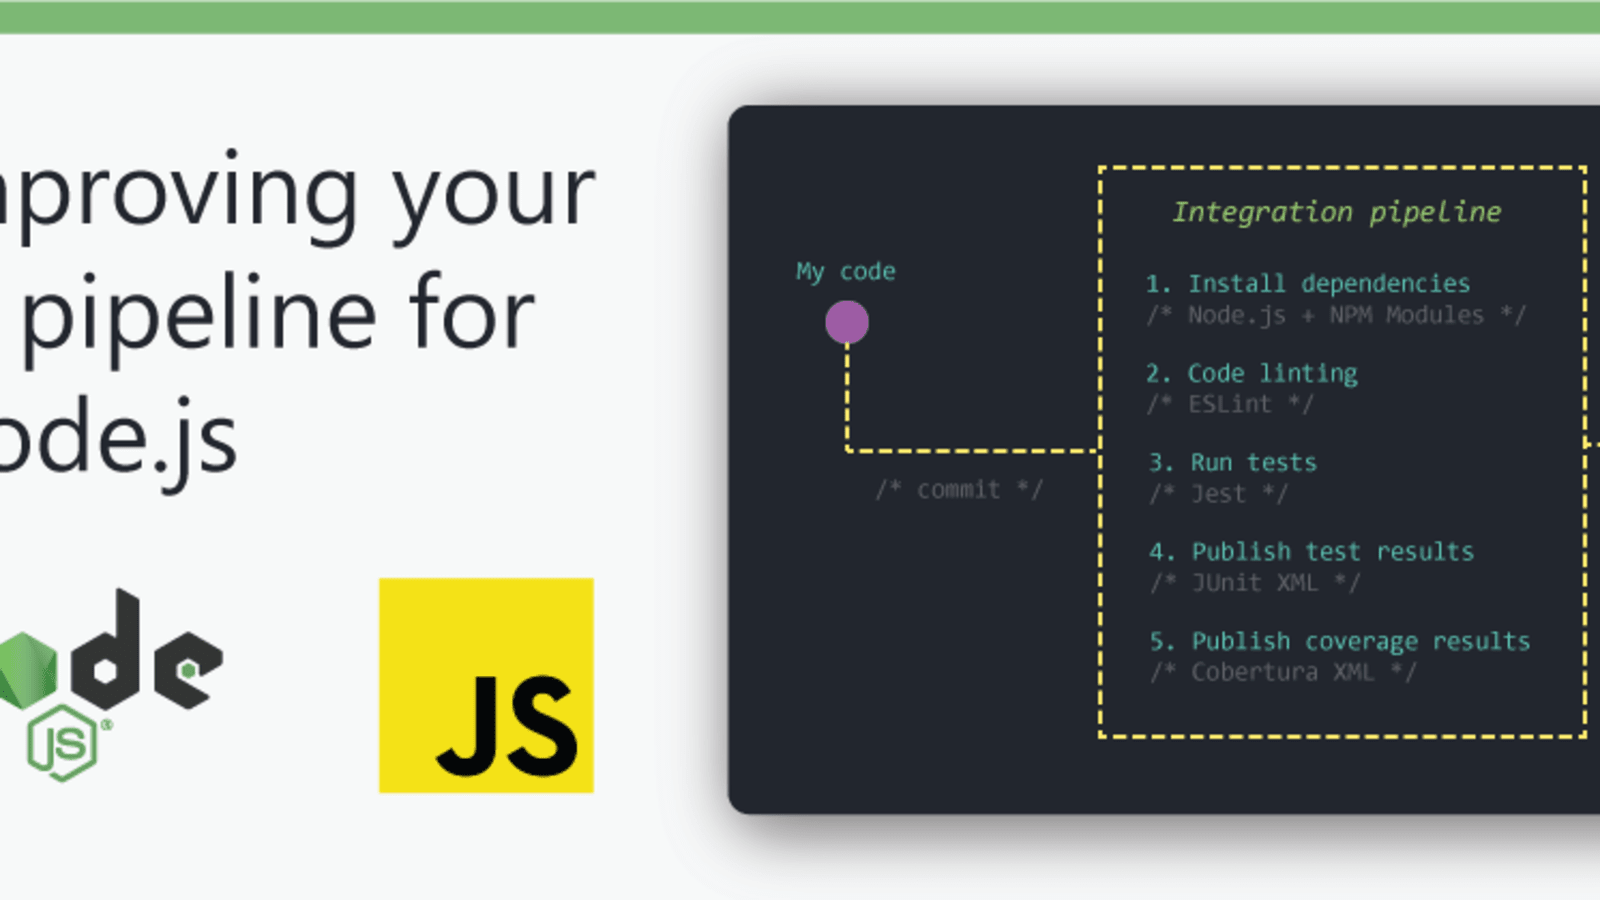 Improving your CI pipeline for Node.js - DEV